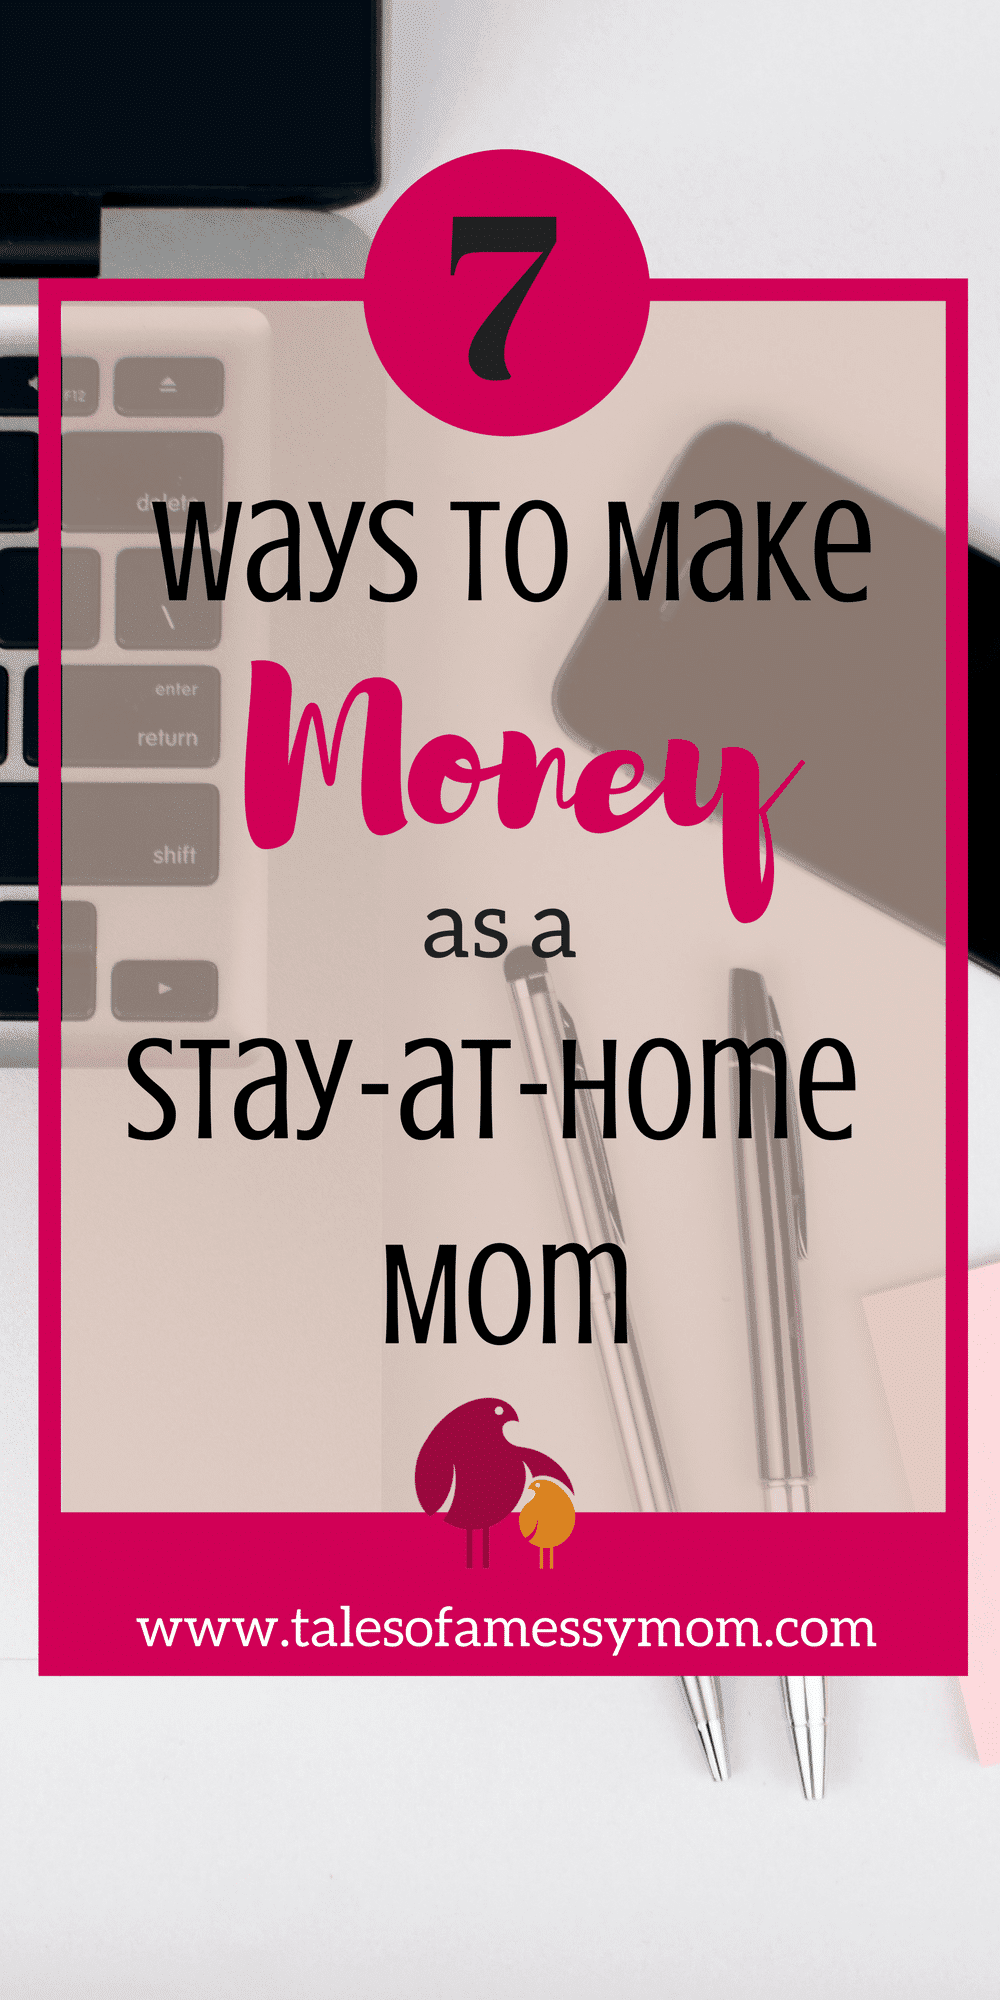 7 ways to make money as a stay-at-home mom. http://www.talesofamessymom.com